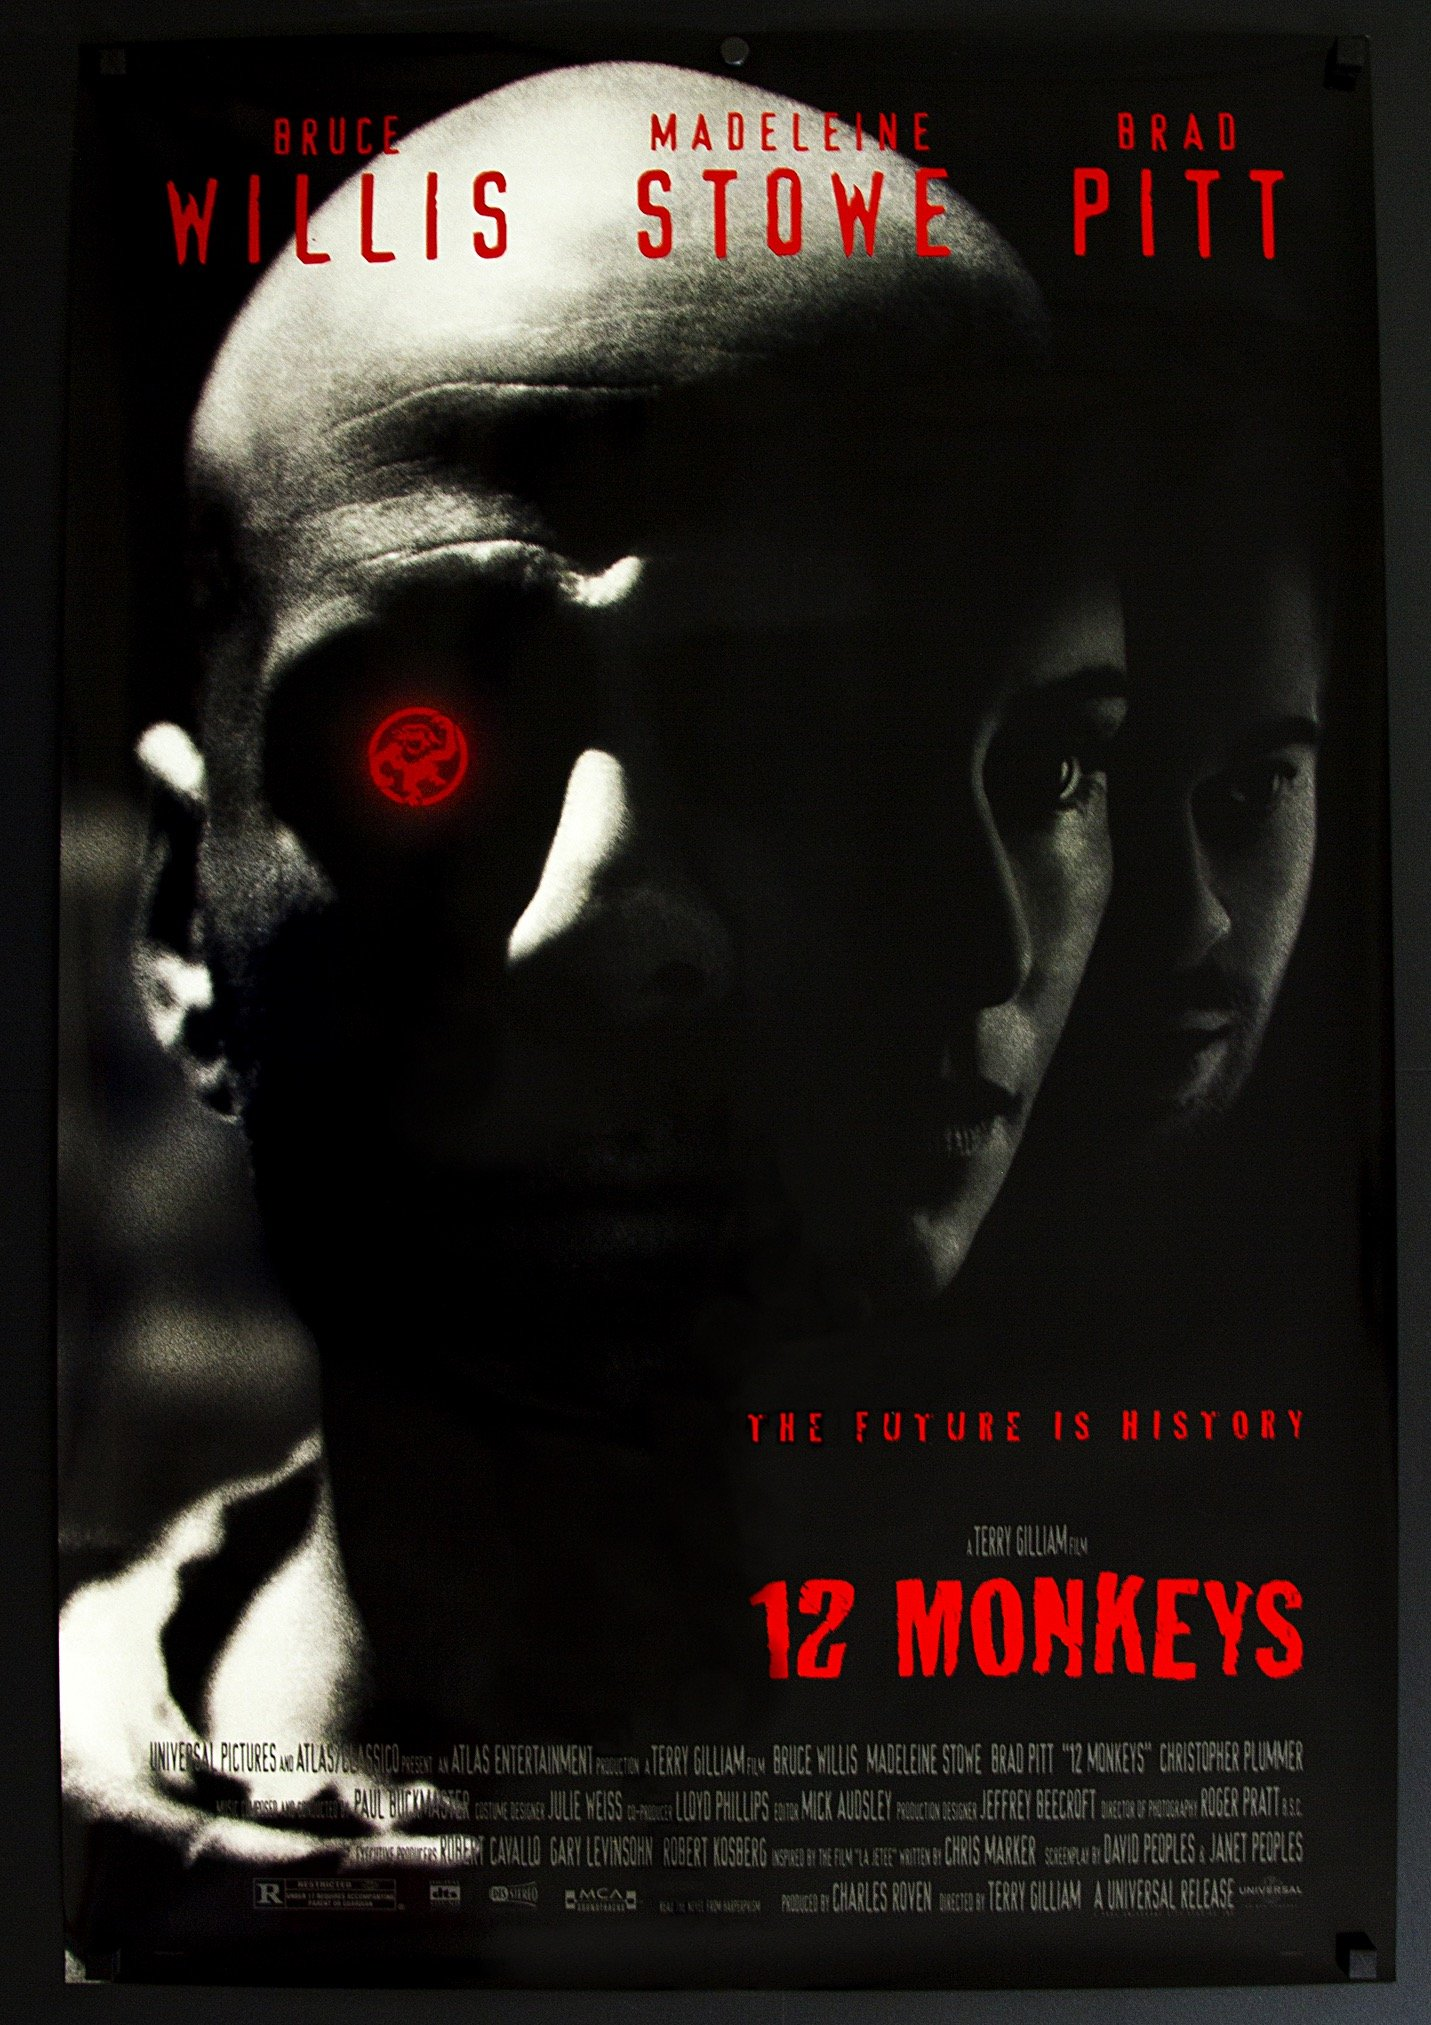 12 Monkeys (1999) - Directed By: Terry GilliamStarring: Bruce Willis, Madeleine Stowe, Brad PittRated: RRun Time: 2h 9mTMM Score: 4 StarsStrengths: Story, Directorial VisionWeakness: Some Acting